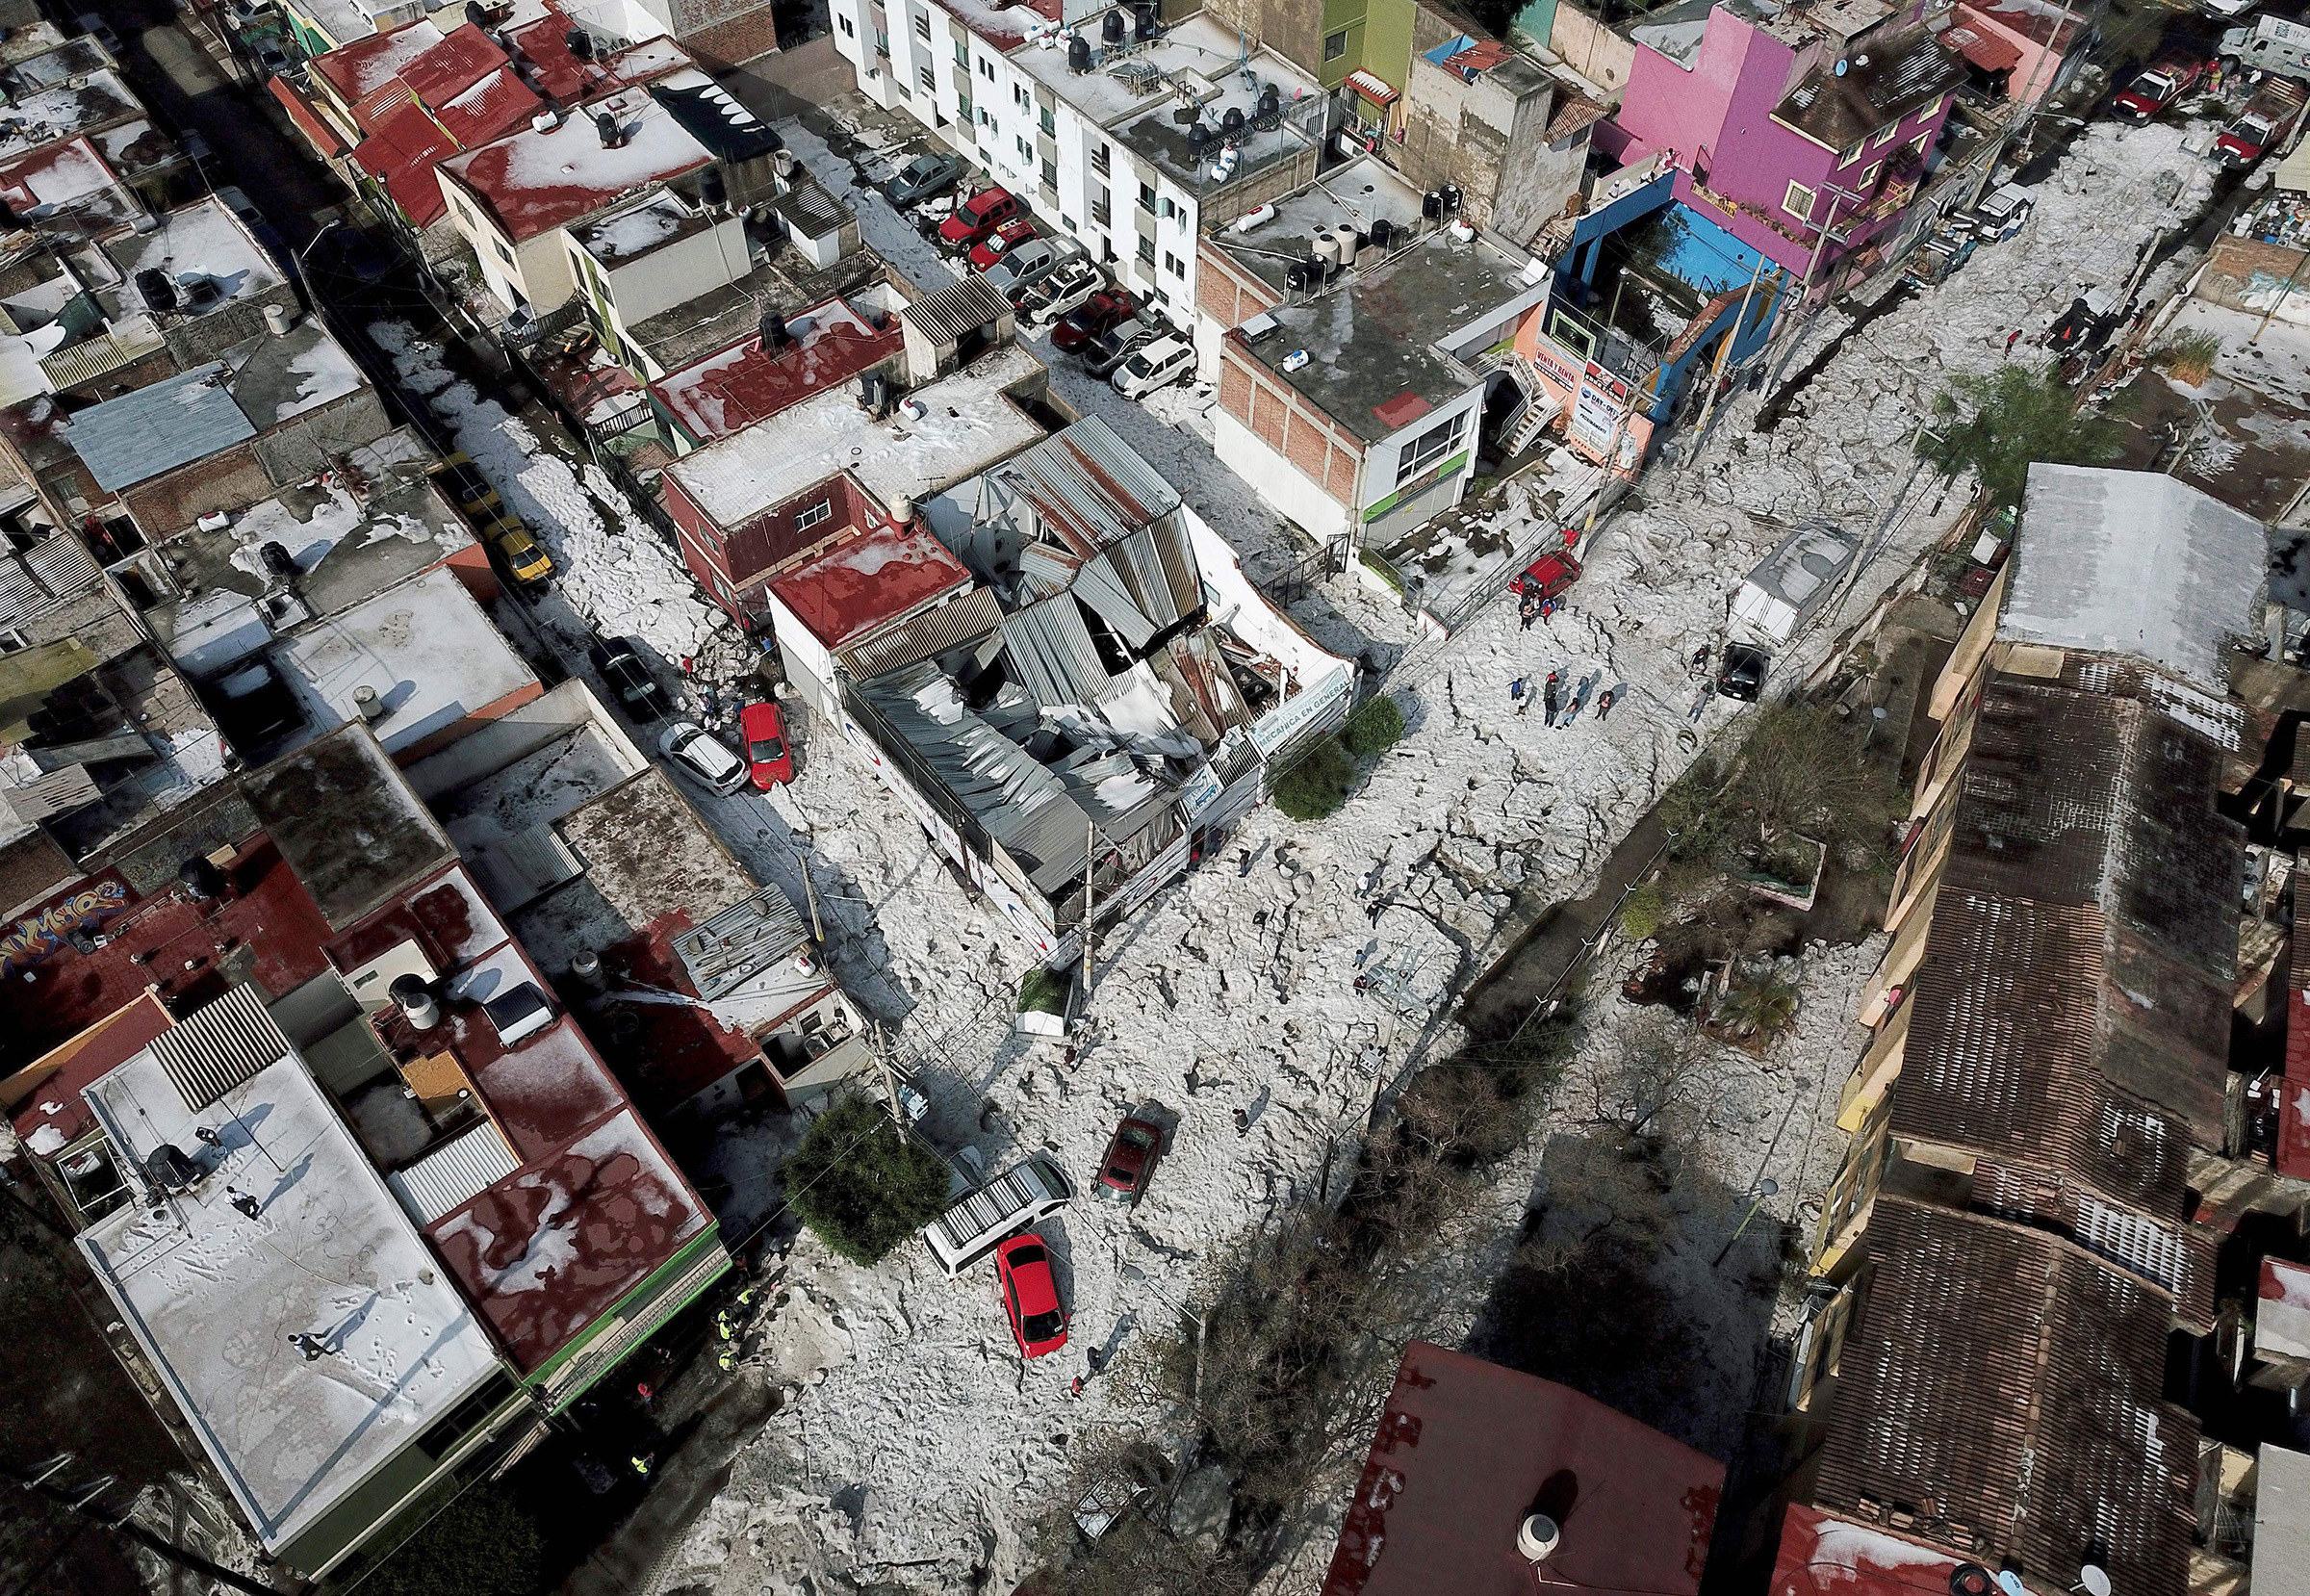 Aerial view of vehicles buried in hail in the streets in the eastern area of Guadalajara, Jalisco state, Mexico, on June 30, 2019.